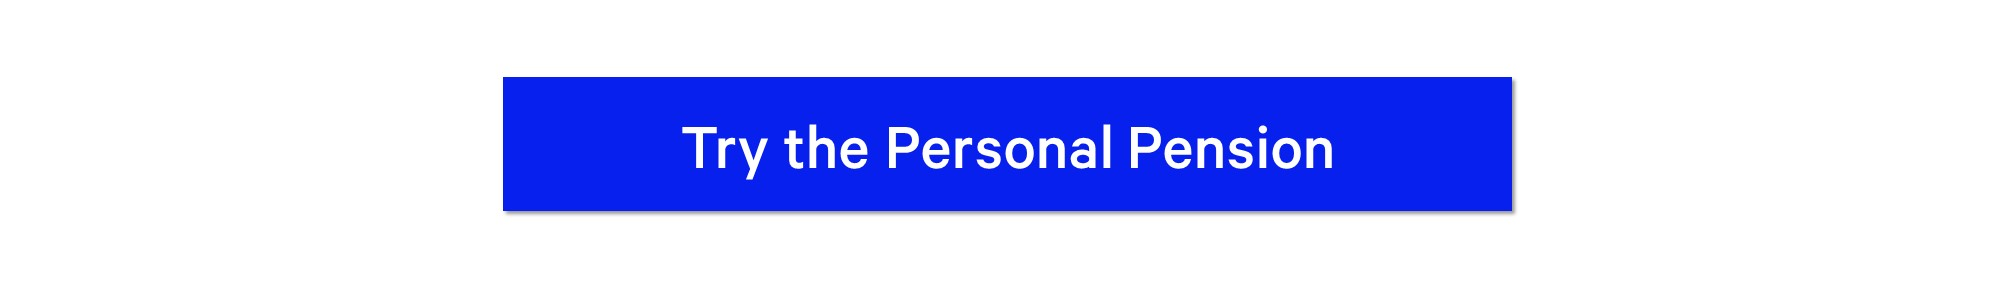 try the personal pension